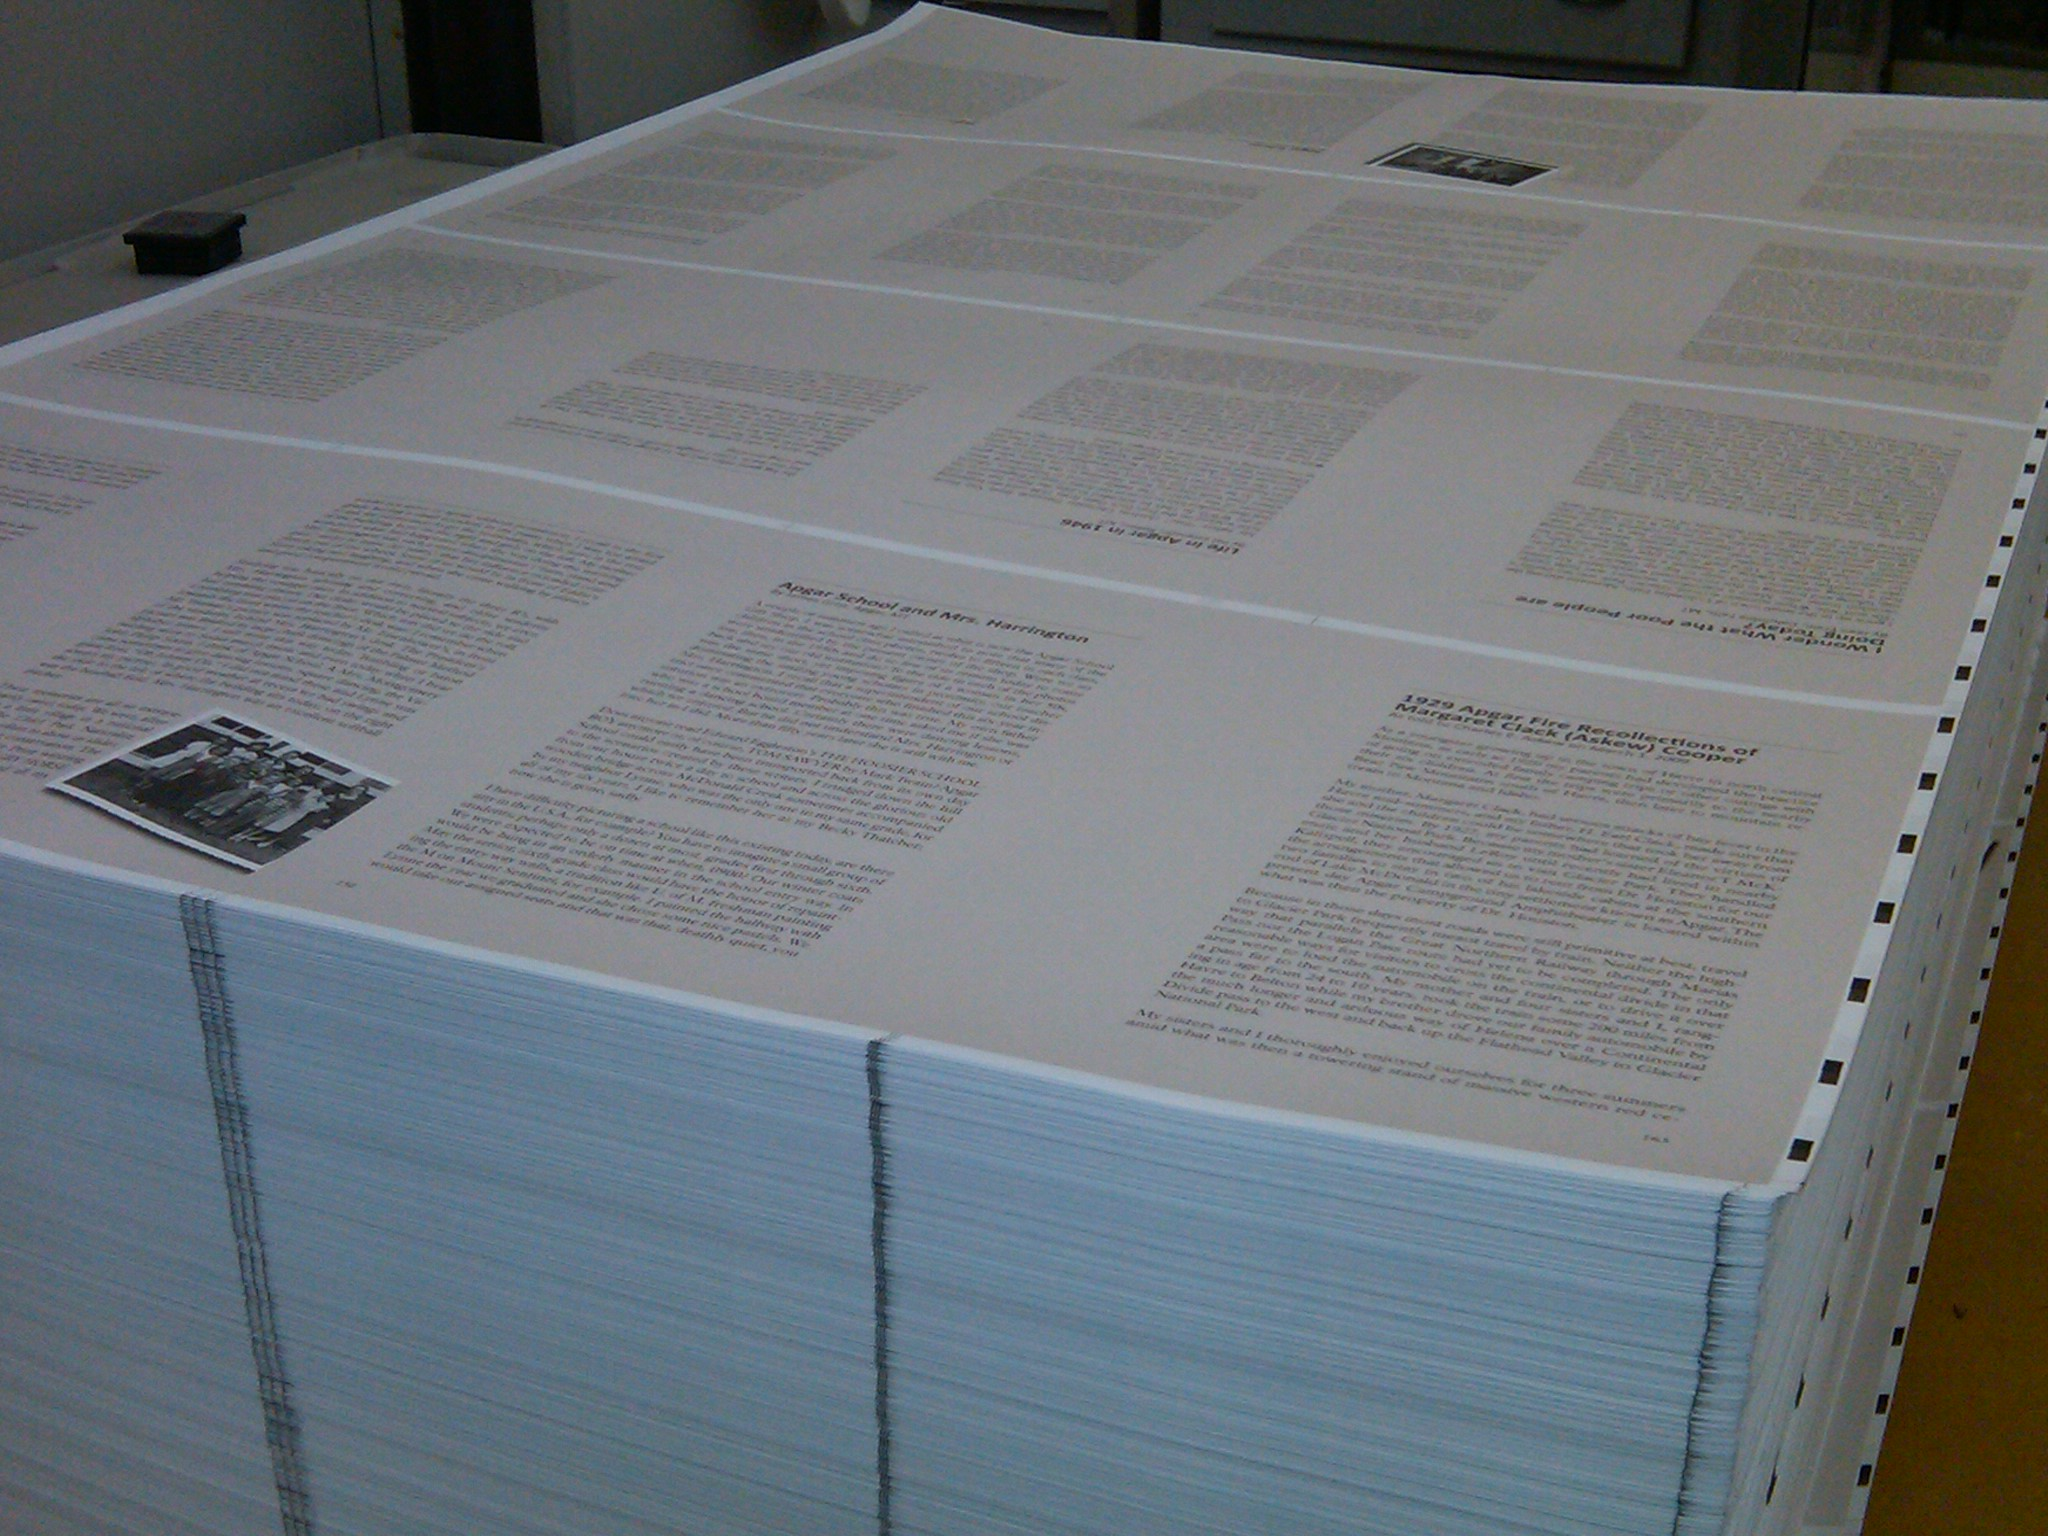 Commemorative story book in the print process.